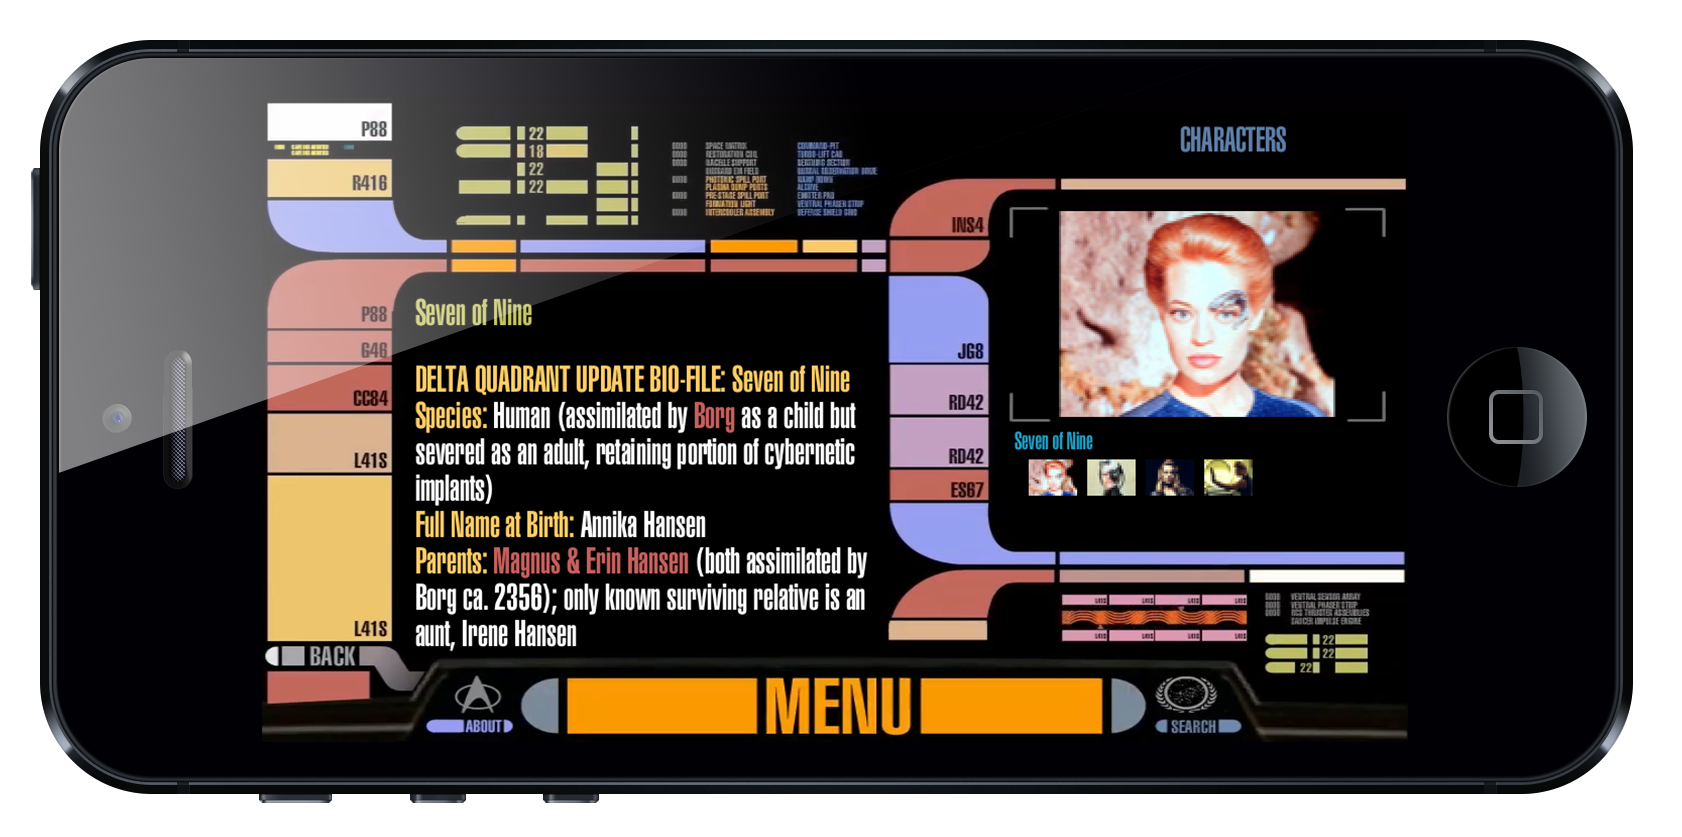 Star trek padd app version 2 arctouch - Lcars ipad app ...